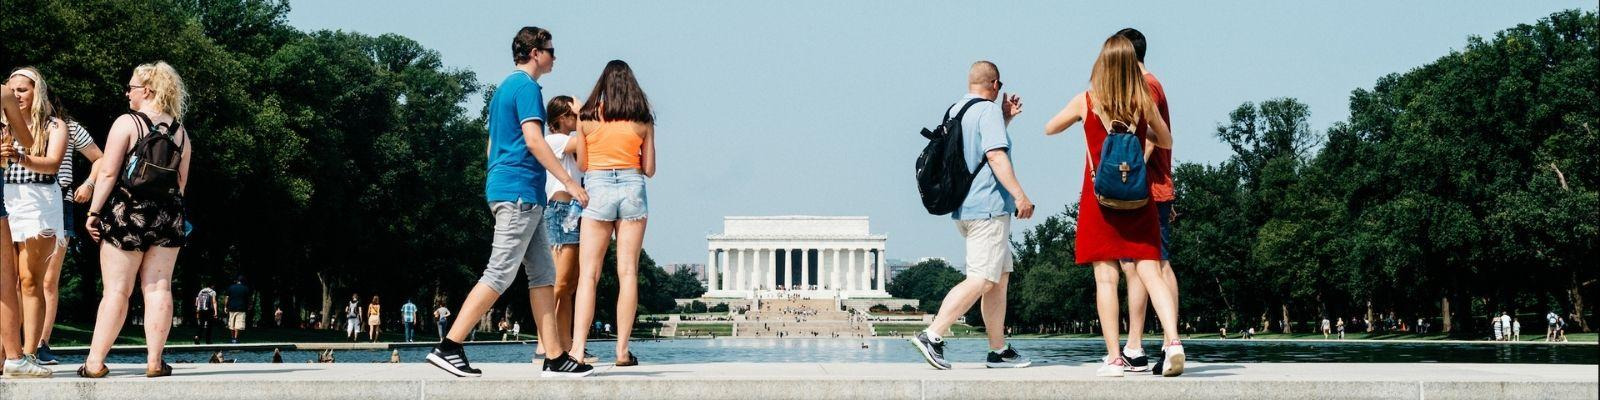 Visiting Washington DC for the First Time? Here's What to See and Do